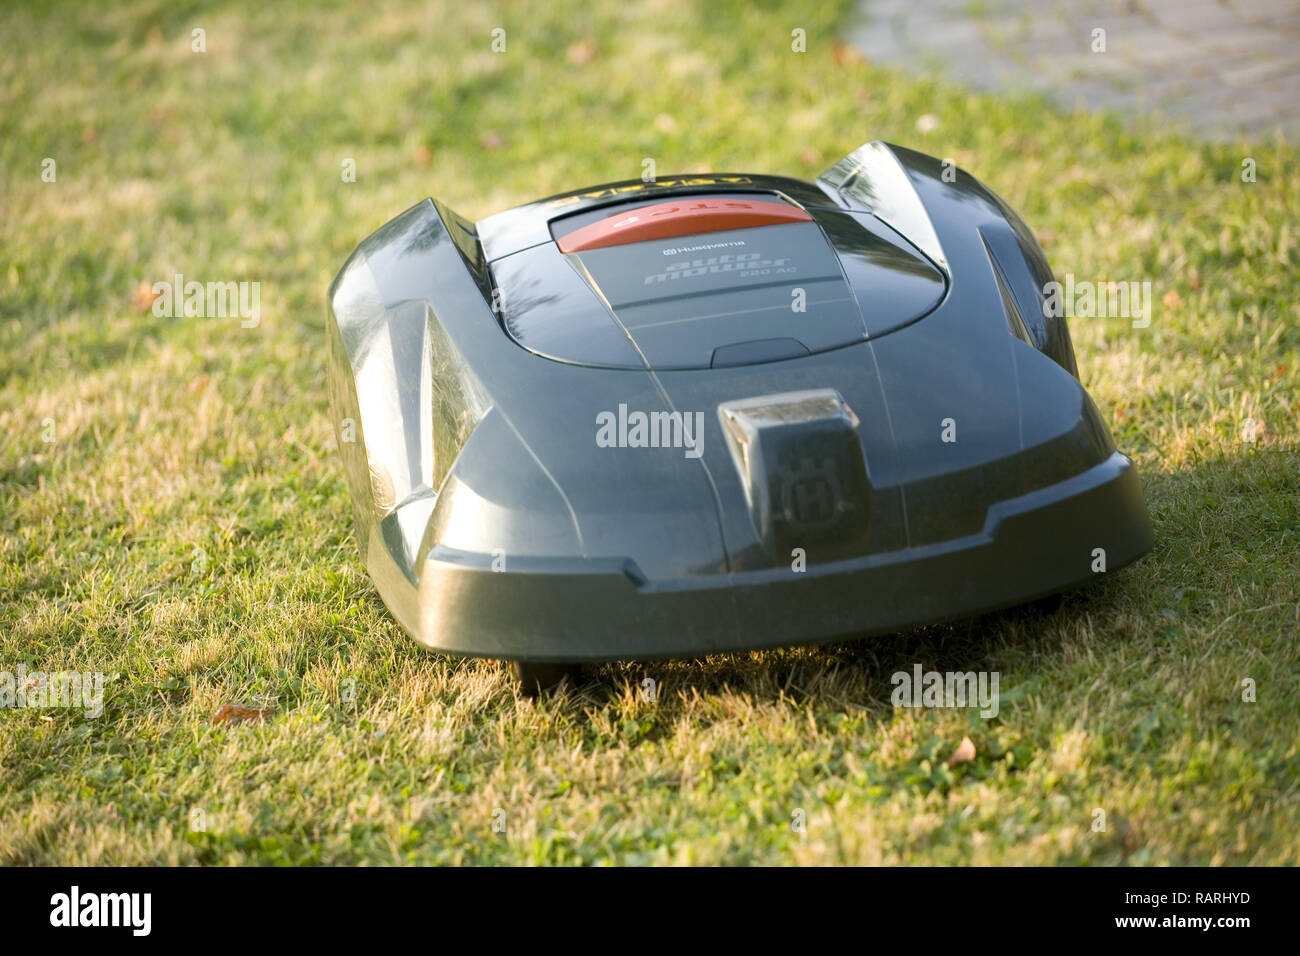 Automatic robot lawn mower cutting grass close up heading to camera - Stock Image